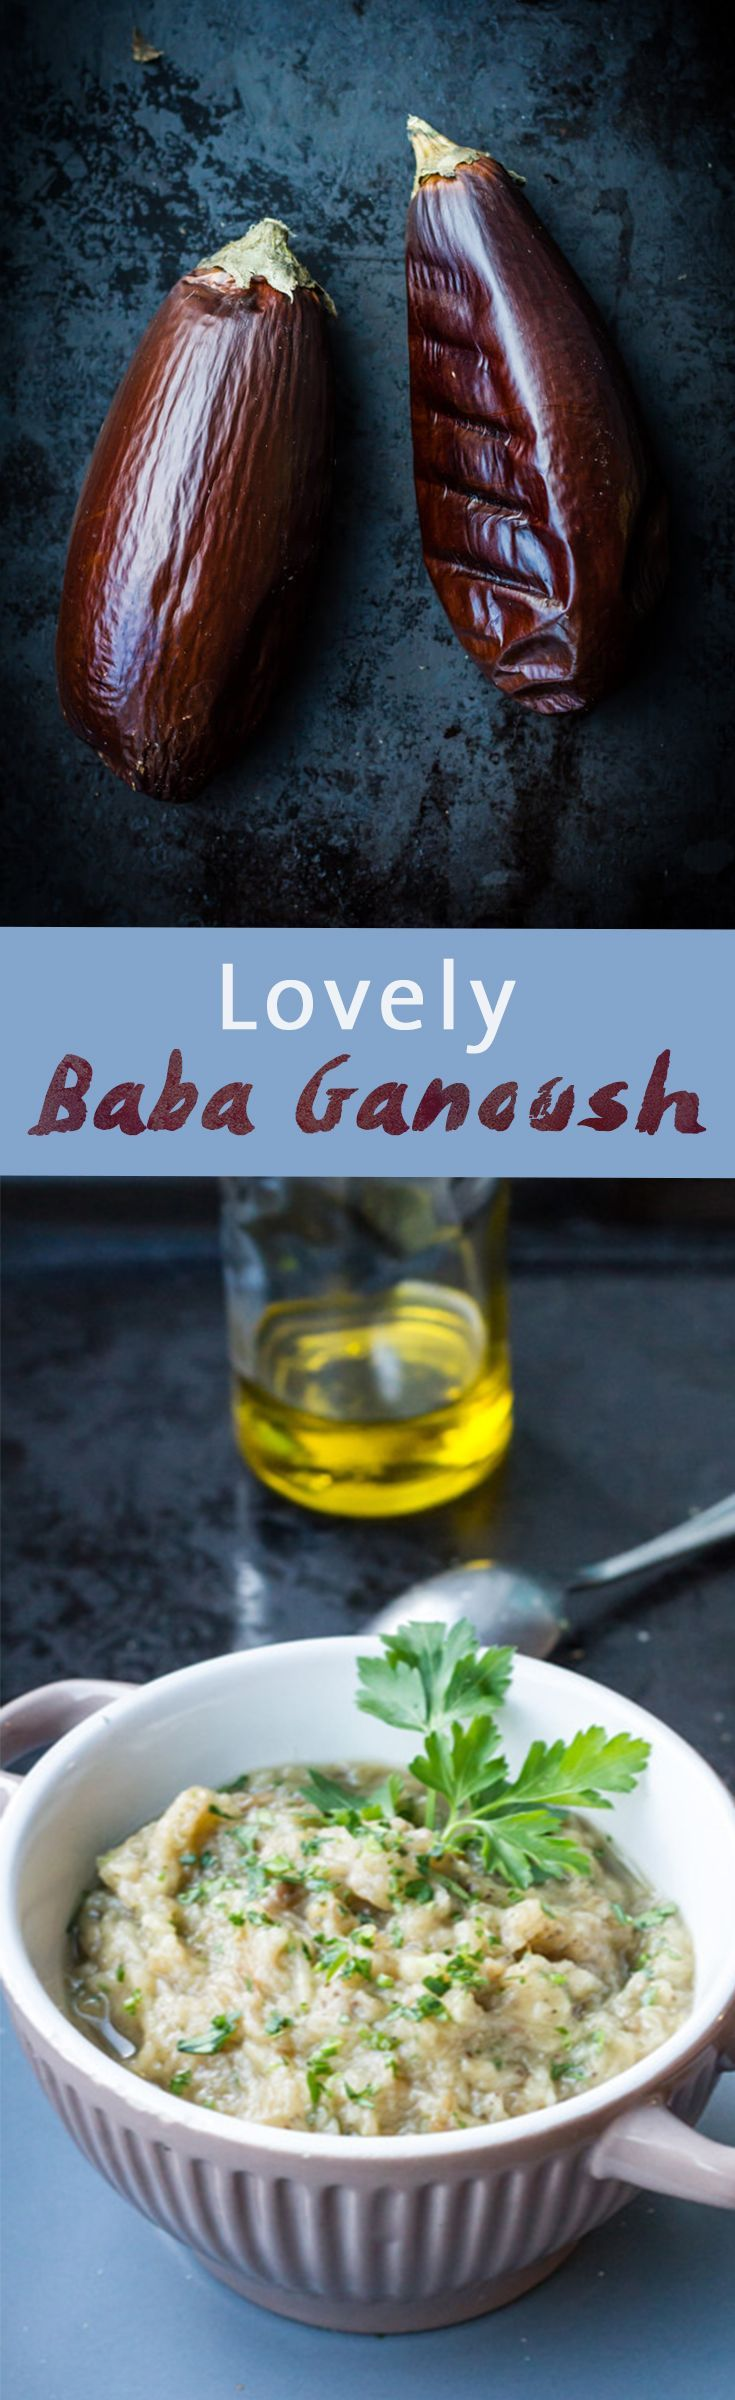 Lovely Baba Ganoush Recipe | Simple Eggplant, Garlic, Lemon and Olive oil recipe | www.haveanotherbite.com | #recipe #yum #arabic